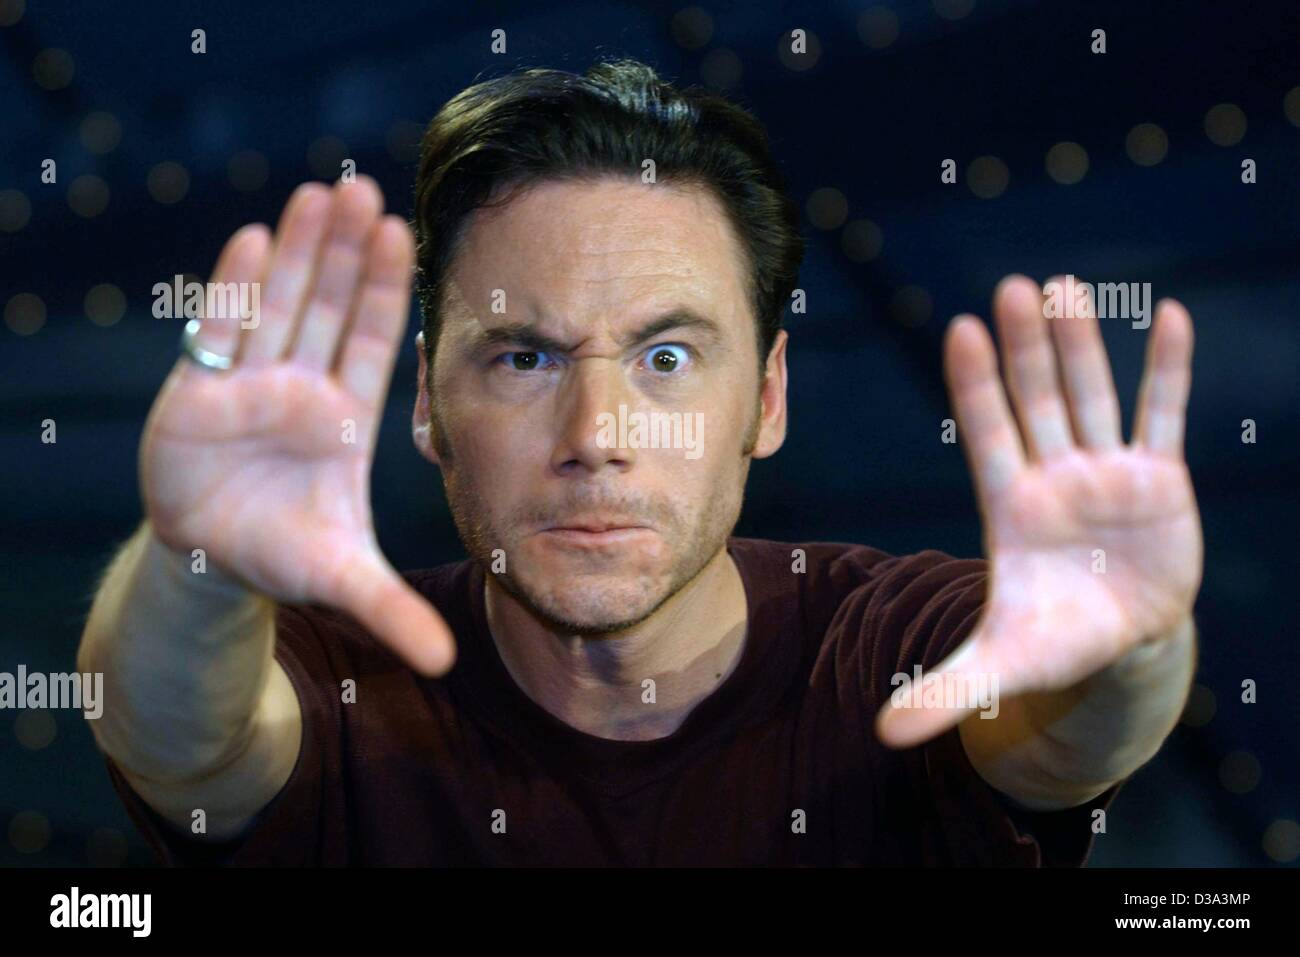 (dpa files) - Michael 'Bully' Herbig, German actor and film director, poses with an exorcizing gesture in a television show in Berlin, 12 July 2001. Herbig is the star of the German western comedy 'Der Schuh des Manitu' ('Manitou's Shoe'), which was a surprise hit at the Cannes film market and recen Stock Photo